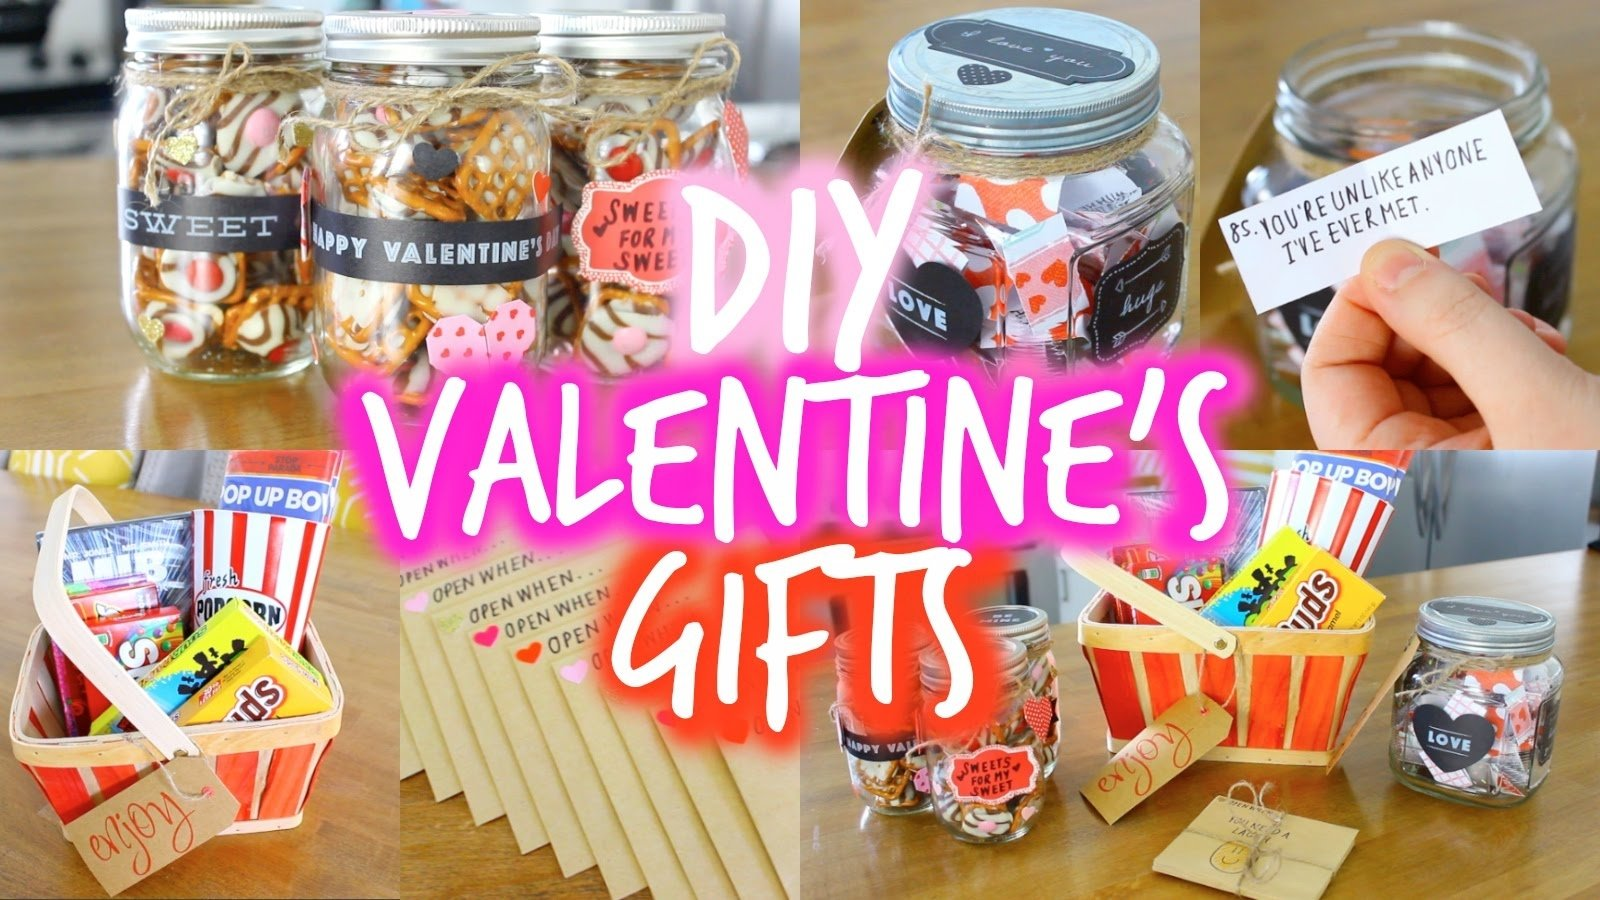 easy diy valentine's day gift ideas for your boyfriend! - youtube